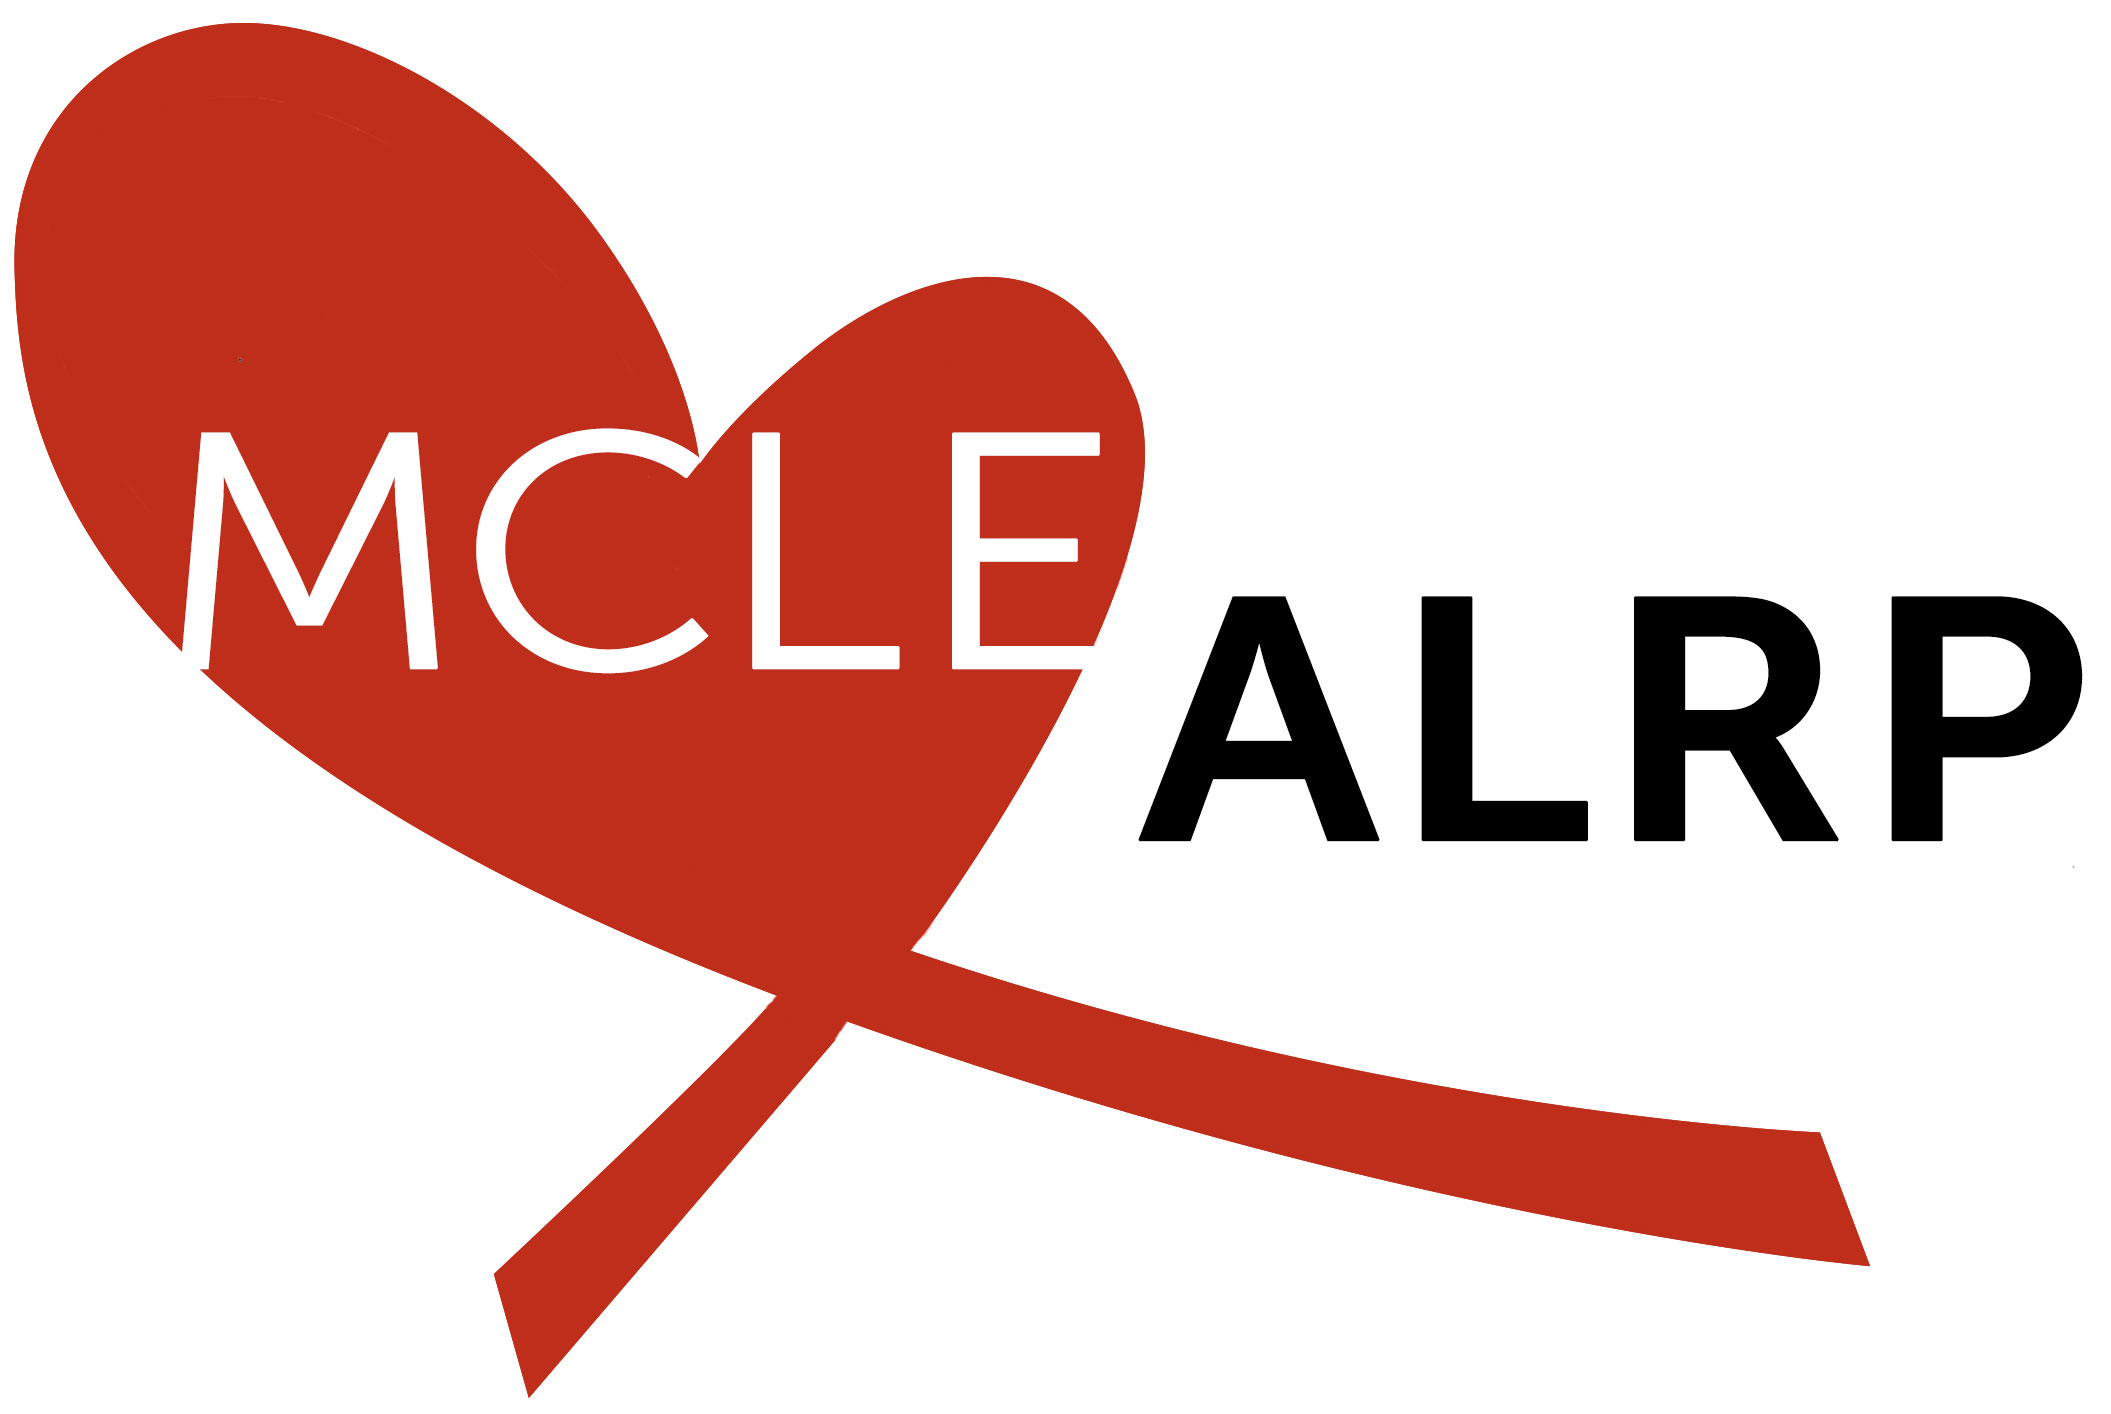 aids legal referral panel mcle training substance use mcle logo 300dpi